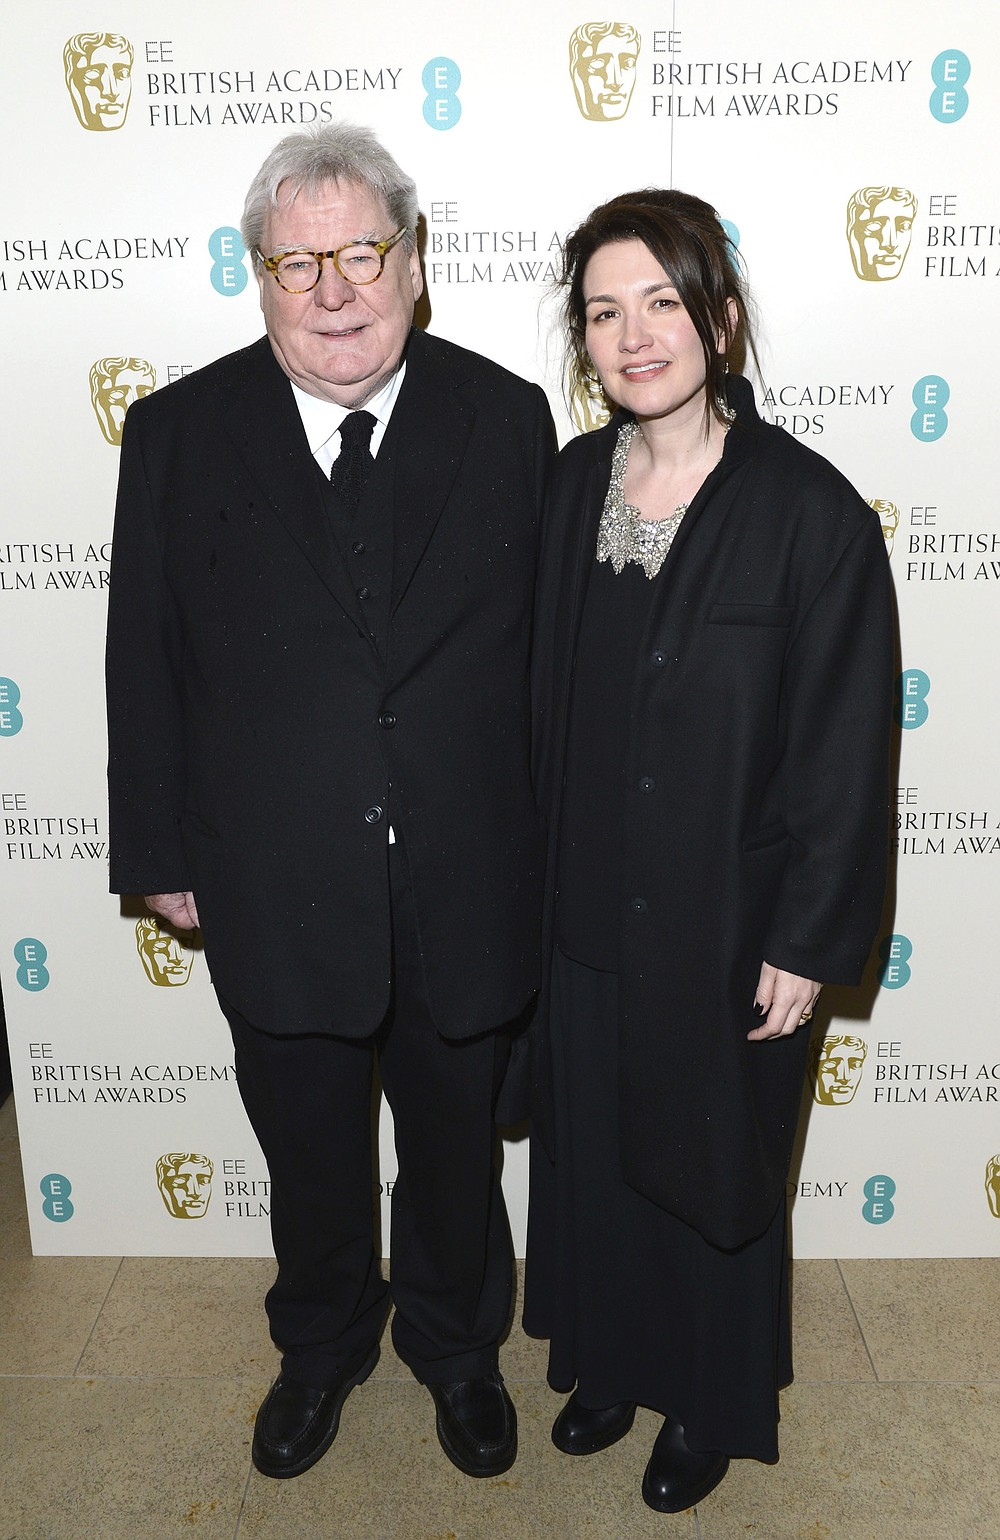 "FILE - Director Alan Parker and his wife, Lisa arrive for the BAFTA Film Awards in London on Feb. 10, 2013. Parker, whose movies included ""Bugsy Malone,"" ""Midnight Express"" and ""Evita,"" has died at the age of 76. A statement from the director's family says Parker died Friday in London after a long illness. (Photo by Jon Furniss/Invision/AP, File)"